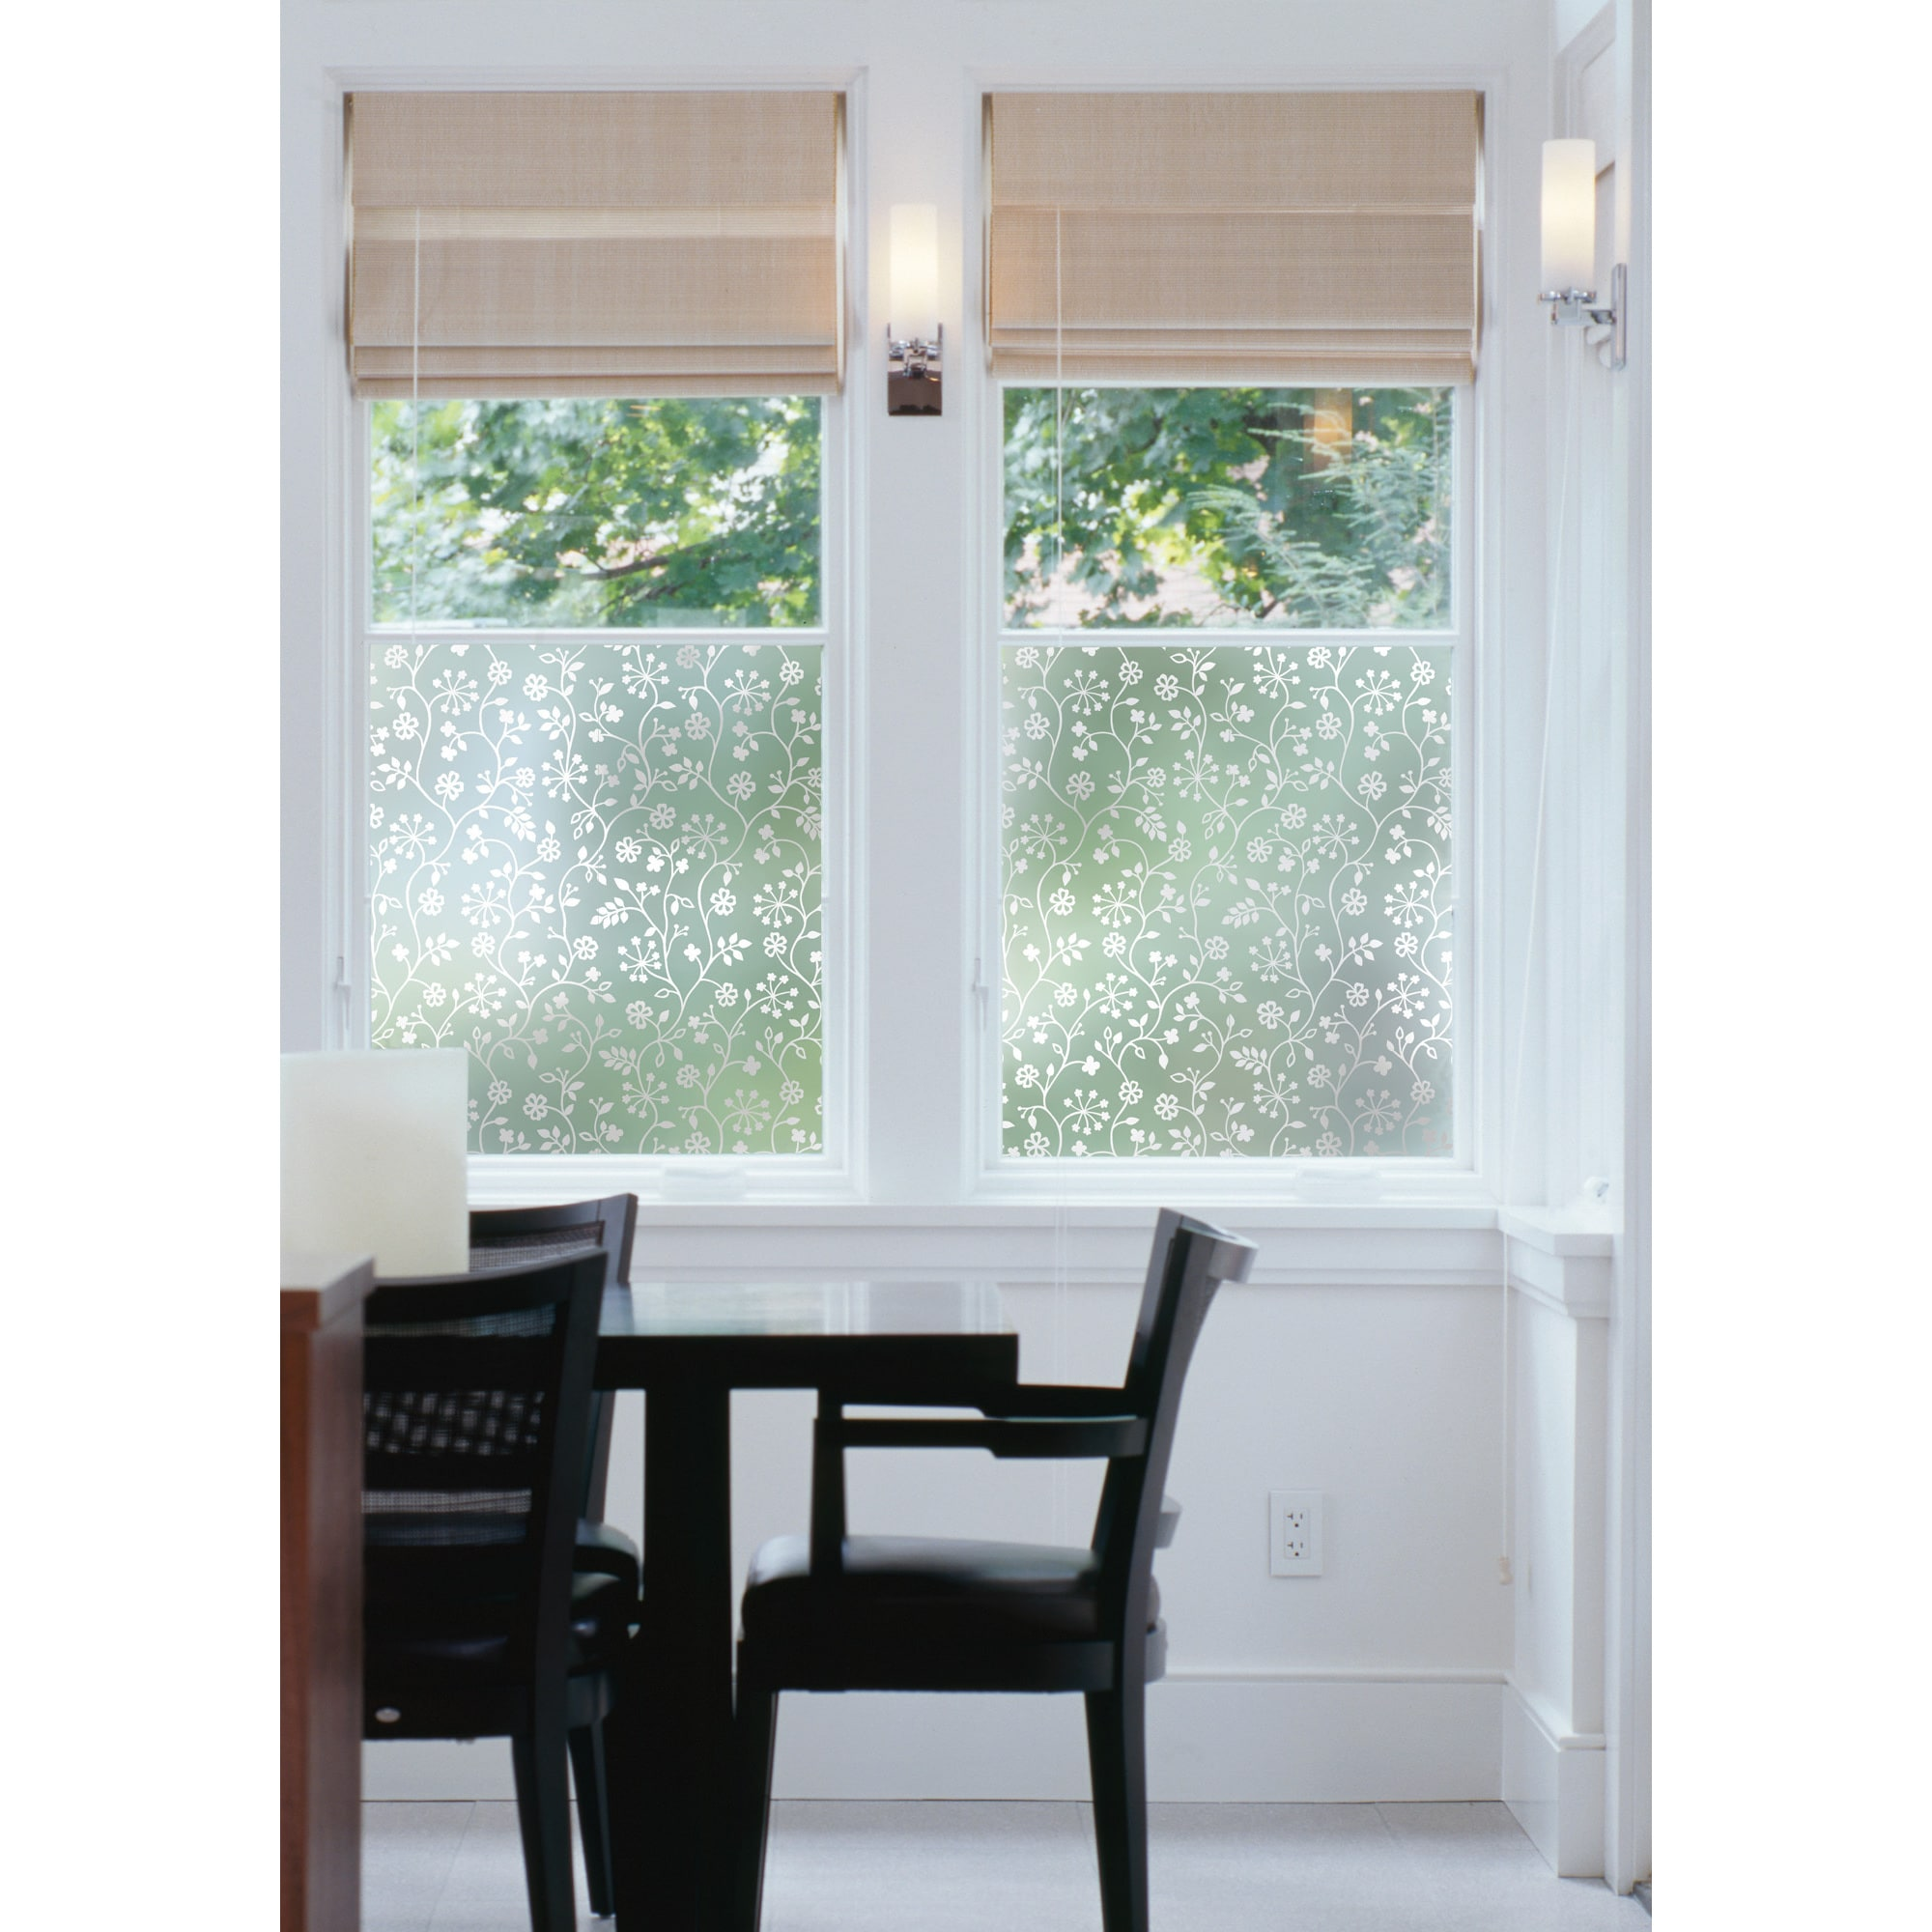 Brewster Winter Garden Window Film (Grey) (Plastic)